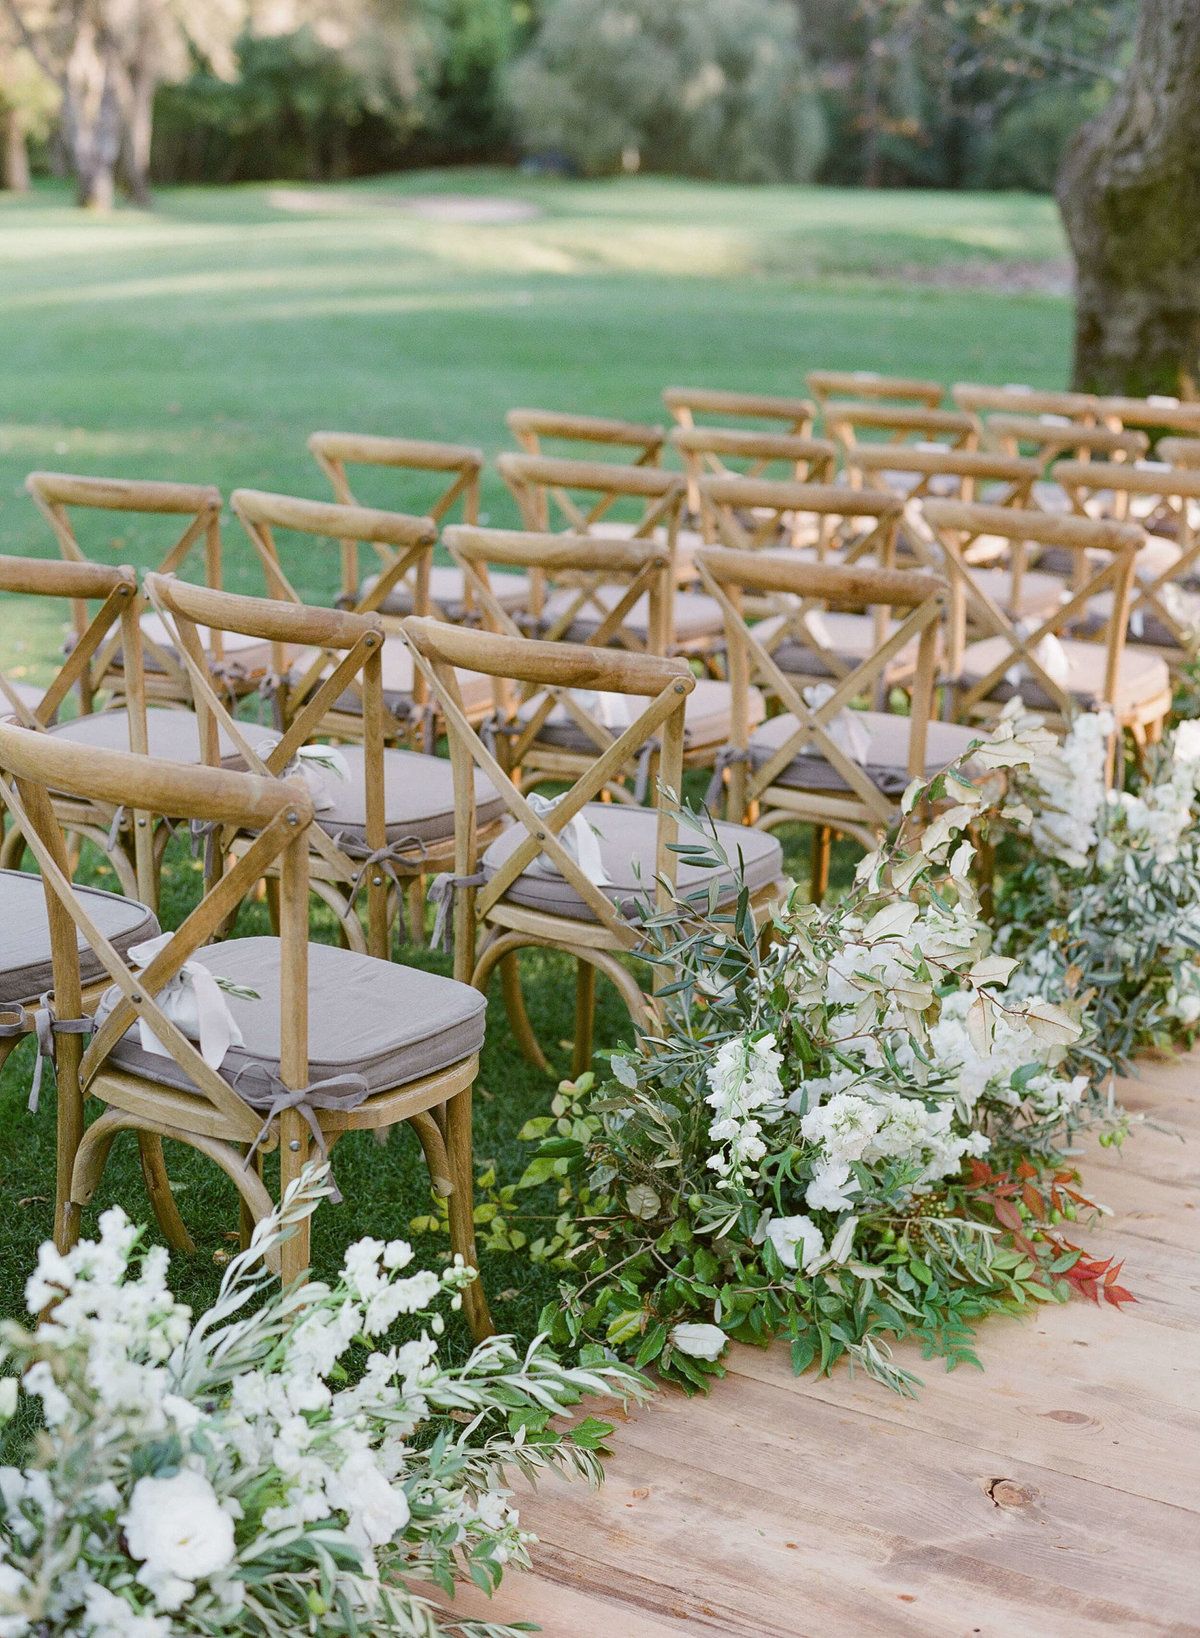 61-KTMerry-weddings-ceremony-chairs-wooden-Napa-Valley